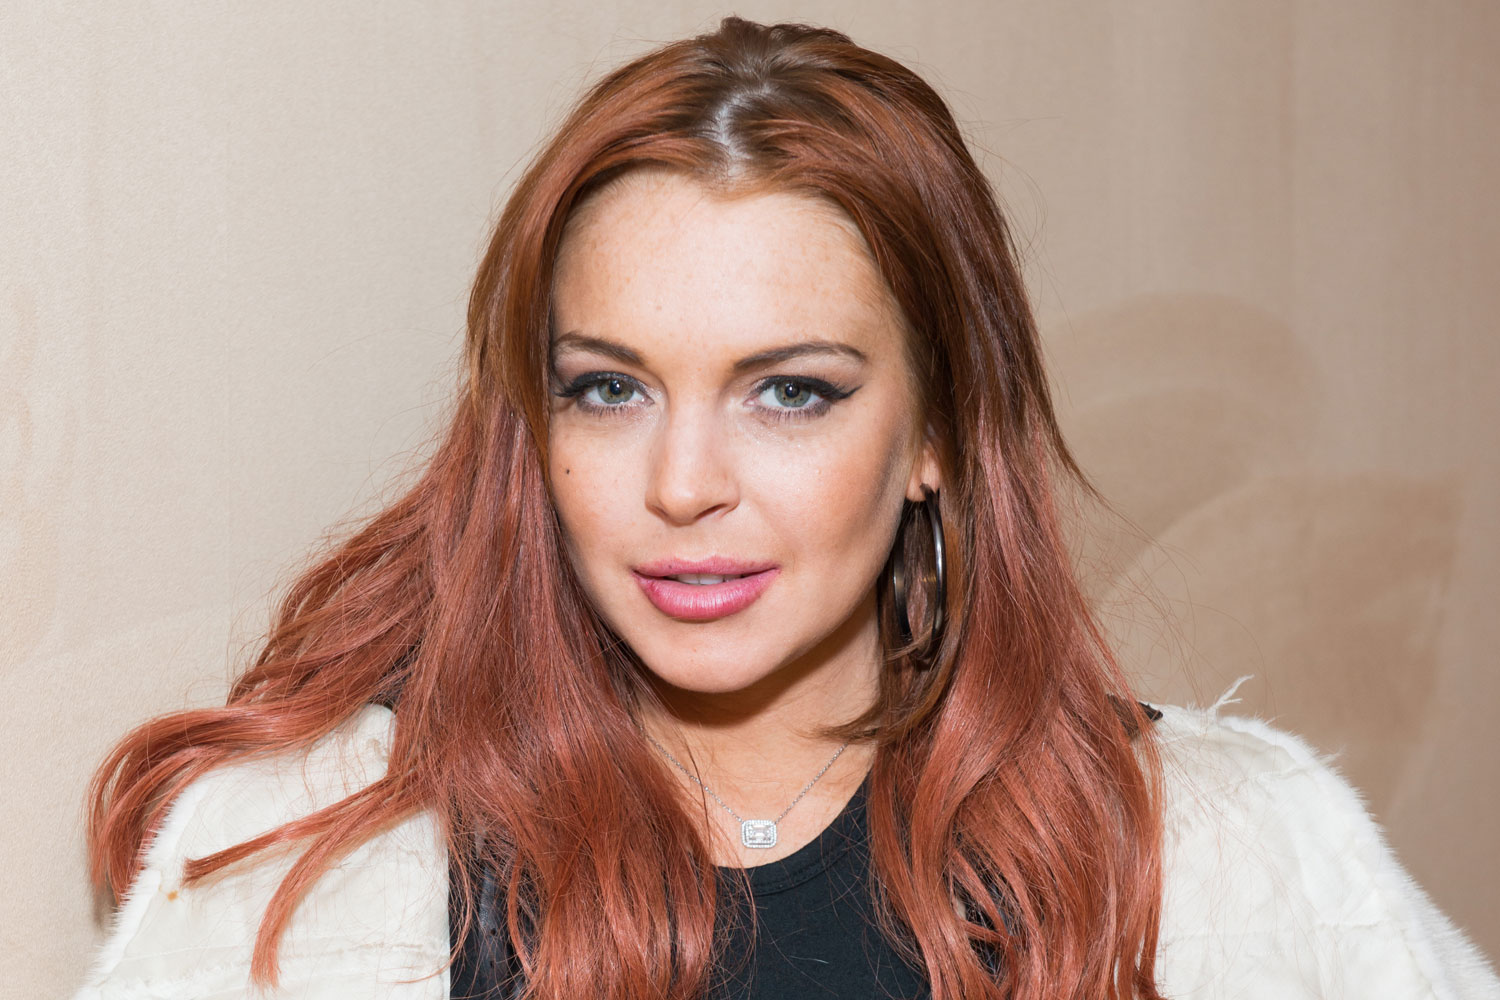 Lindsay Lohan goes clubbing on eve of court hearing, trial